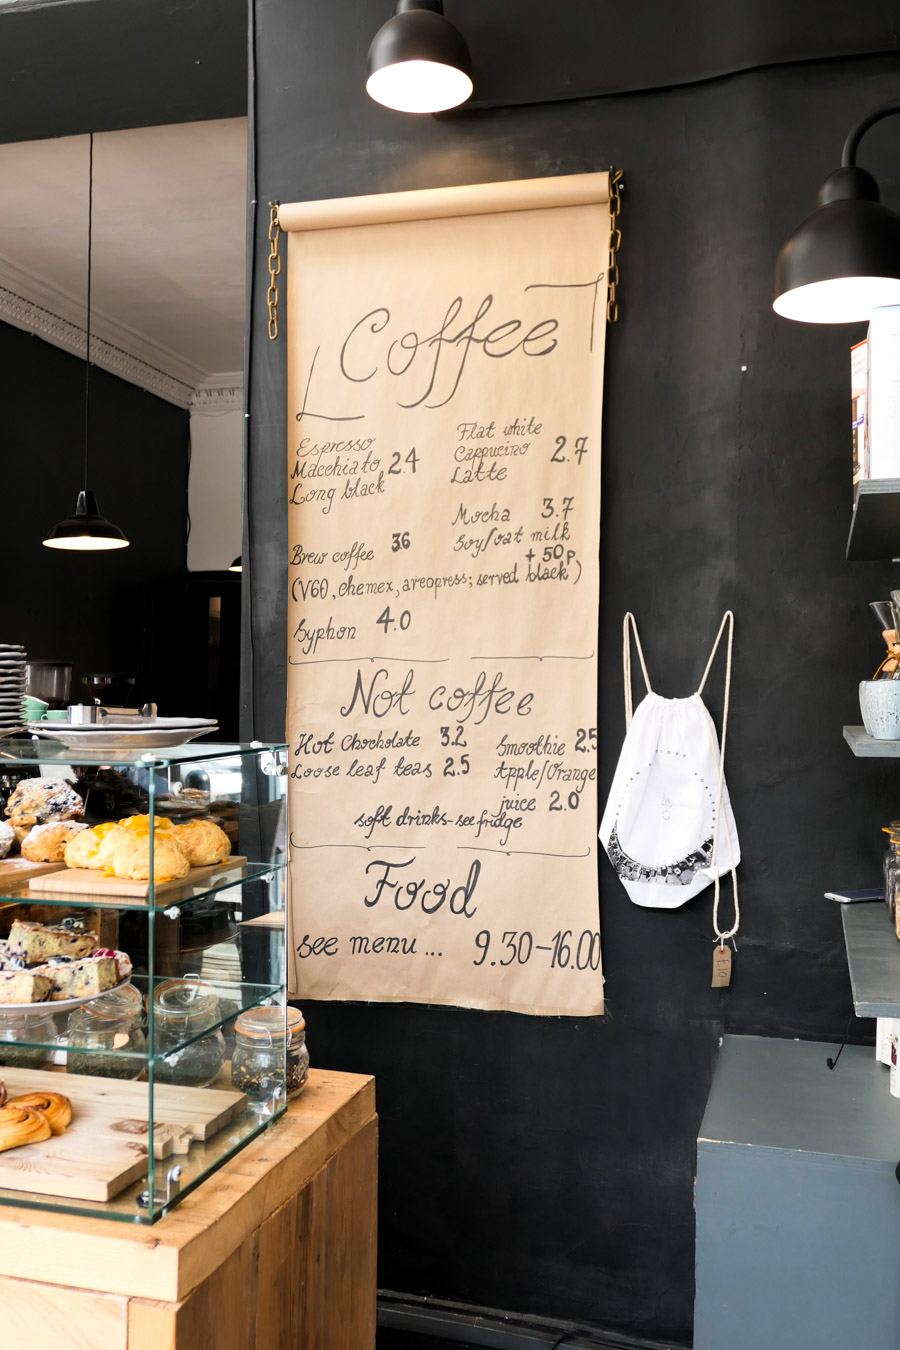 Best Stockbridge Edinburgh Restaurants Travel Guide - Artisan Coffee Roasters